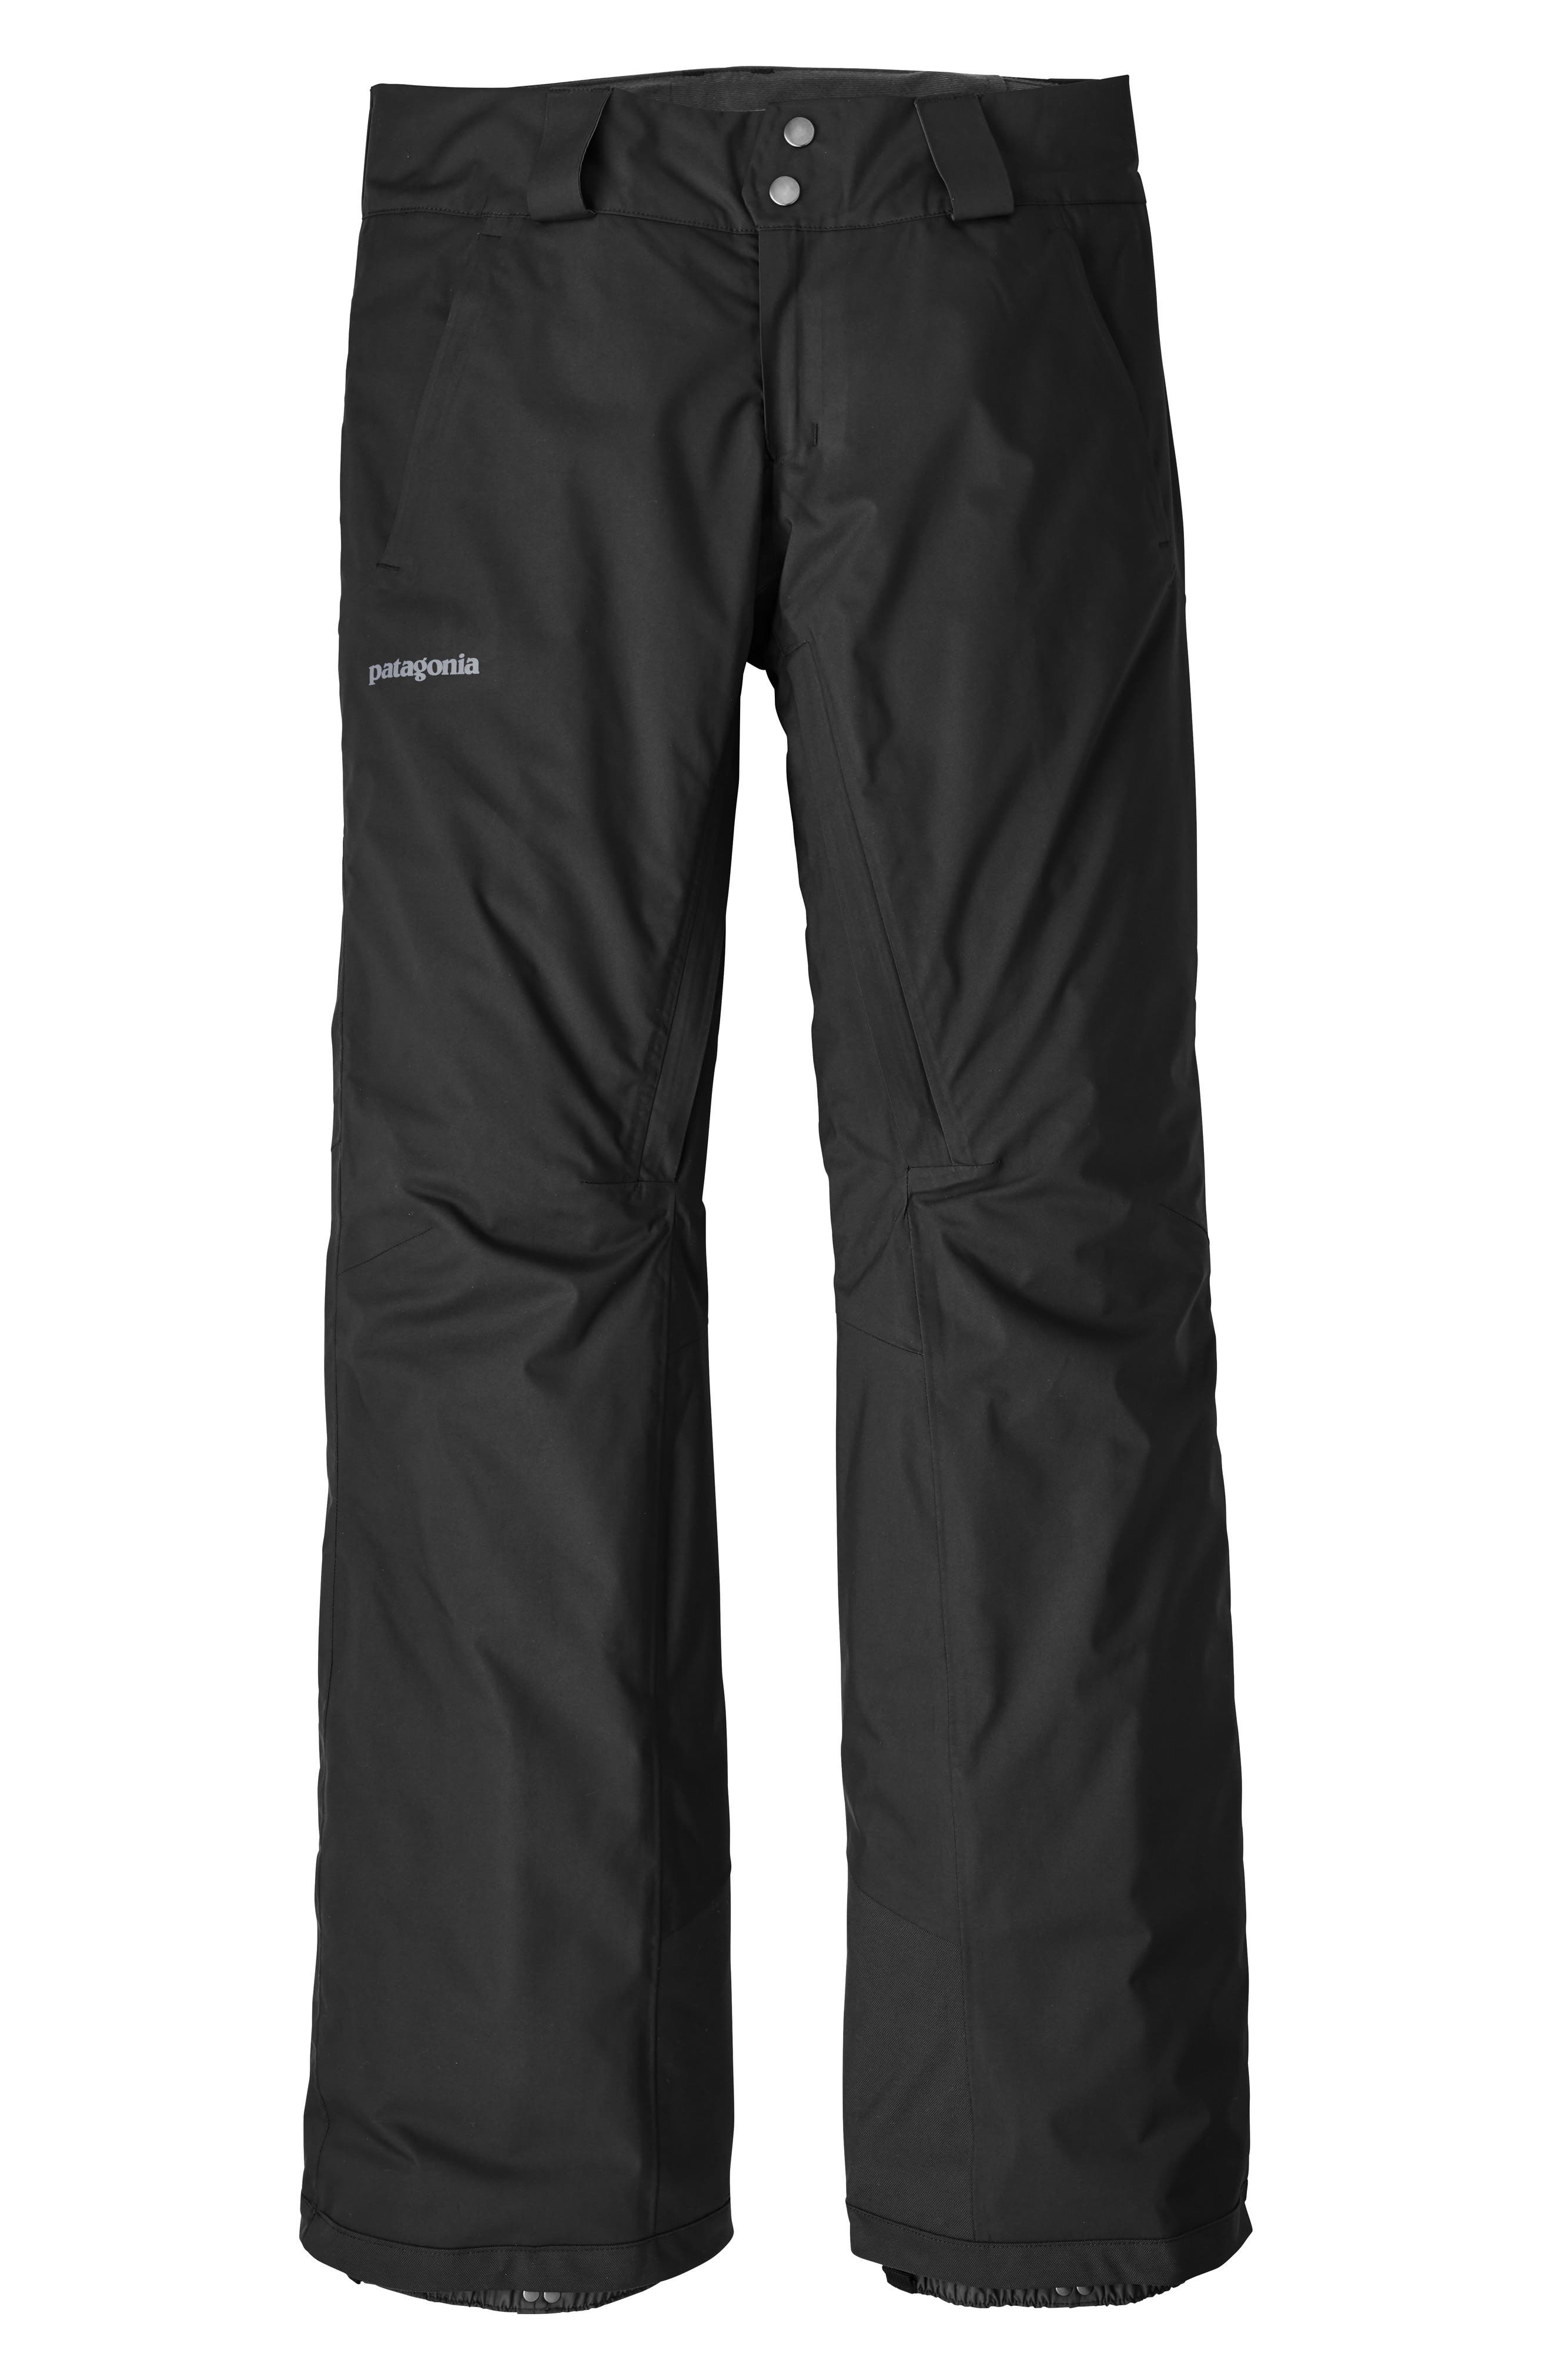 Snowbelle Insulated Snow Pants,                             Main thumbnail 1, color,                             BLACK